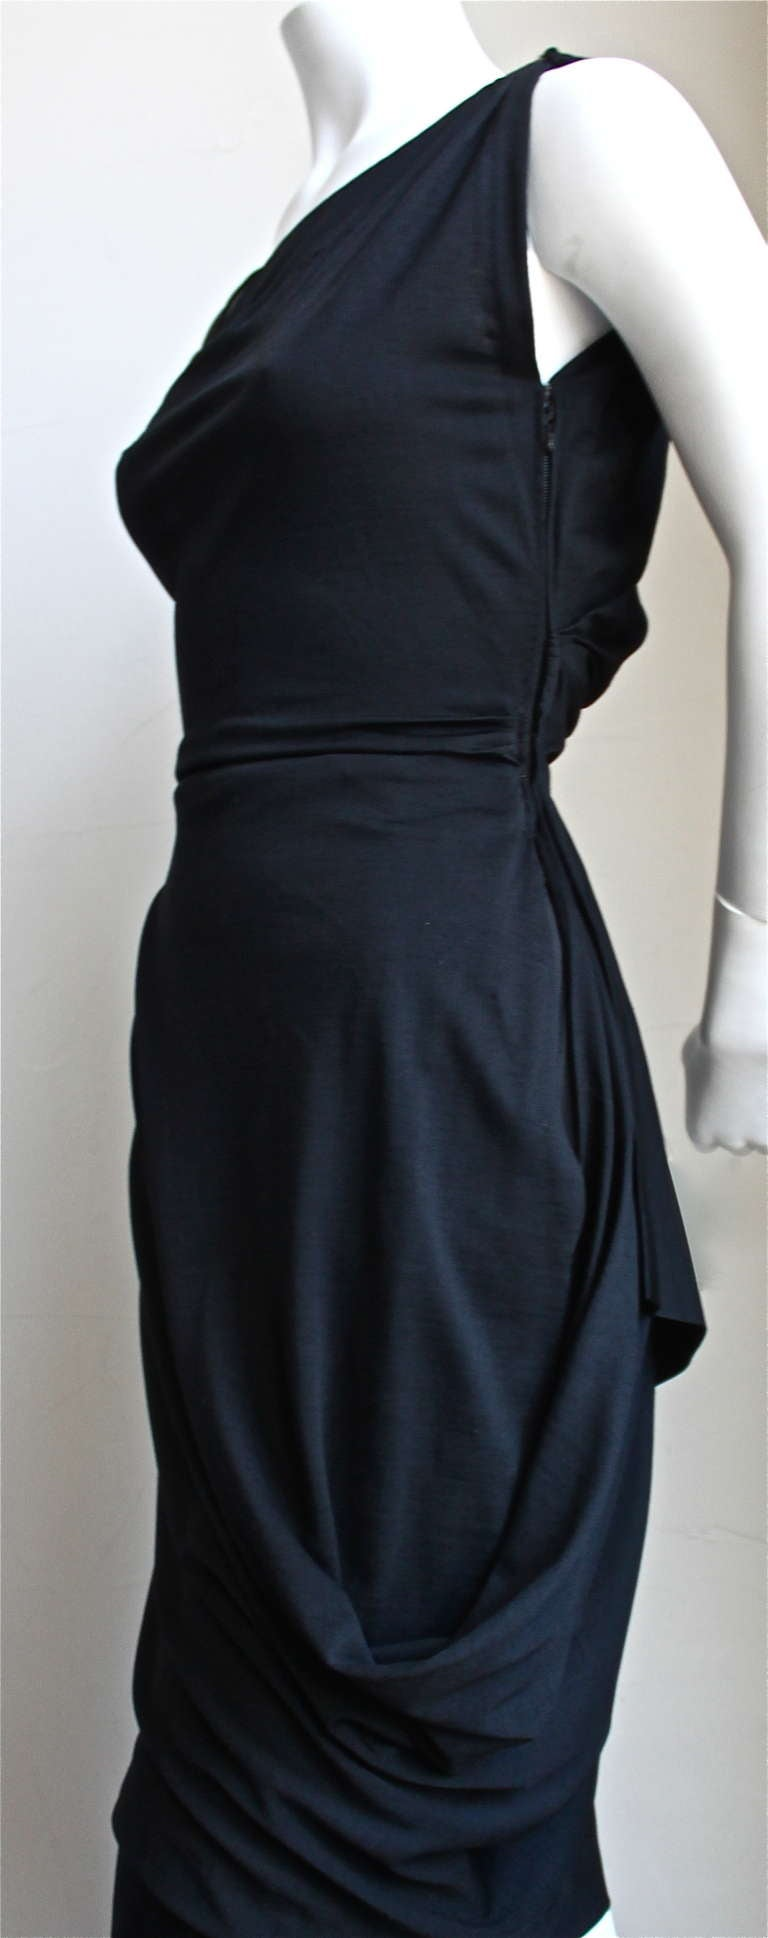 1950's PEDRO RODRIGUEZ haute couture asymmetrical draped wool jersey dress In Excellent Condition For Sale In Oakland, CA